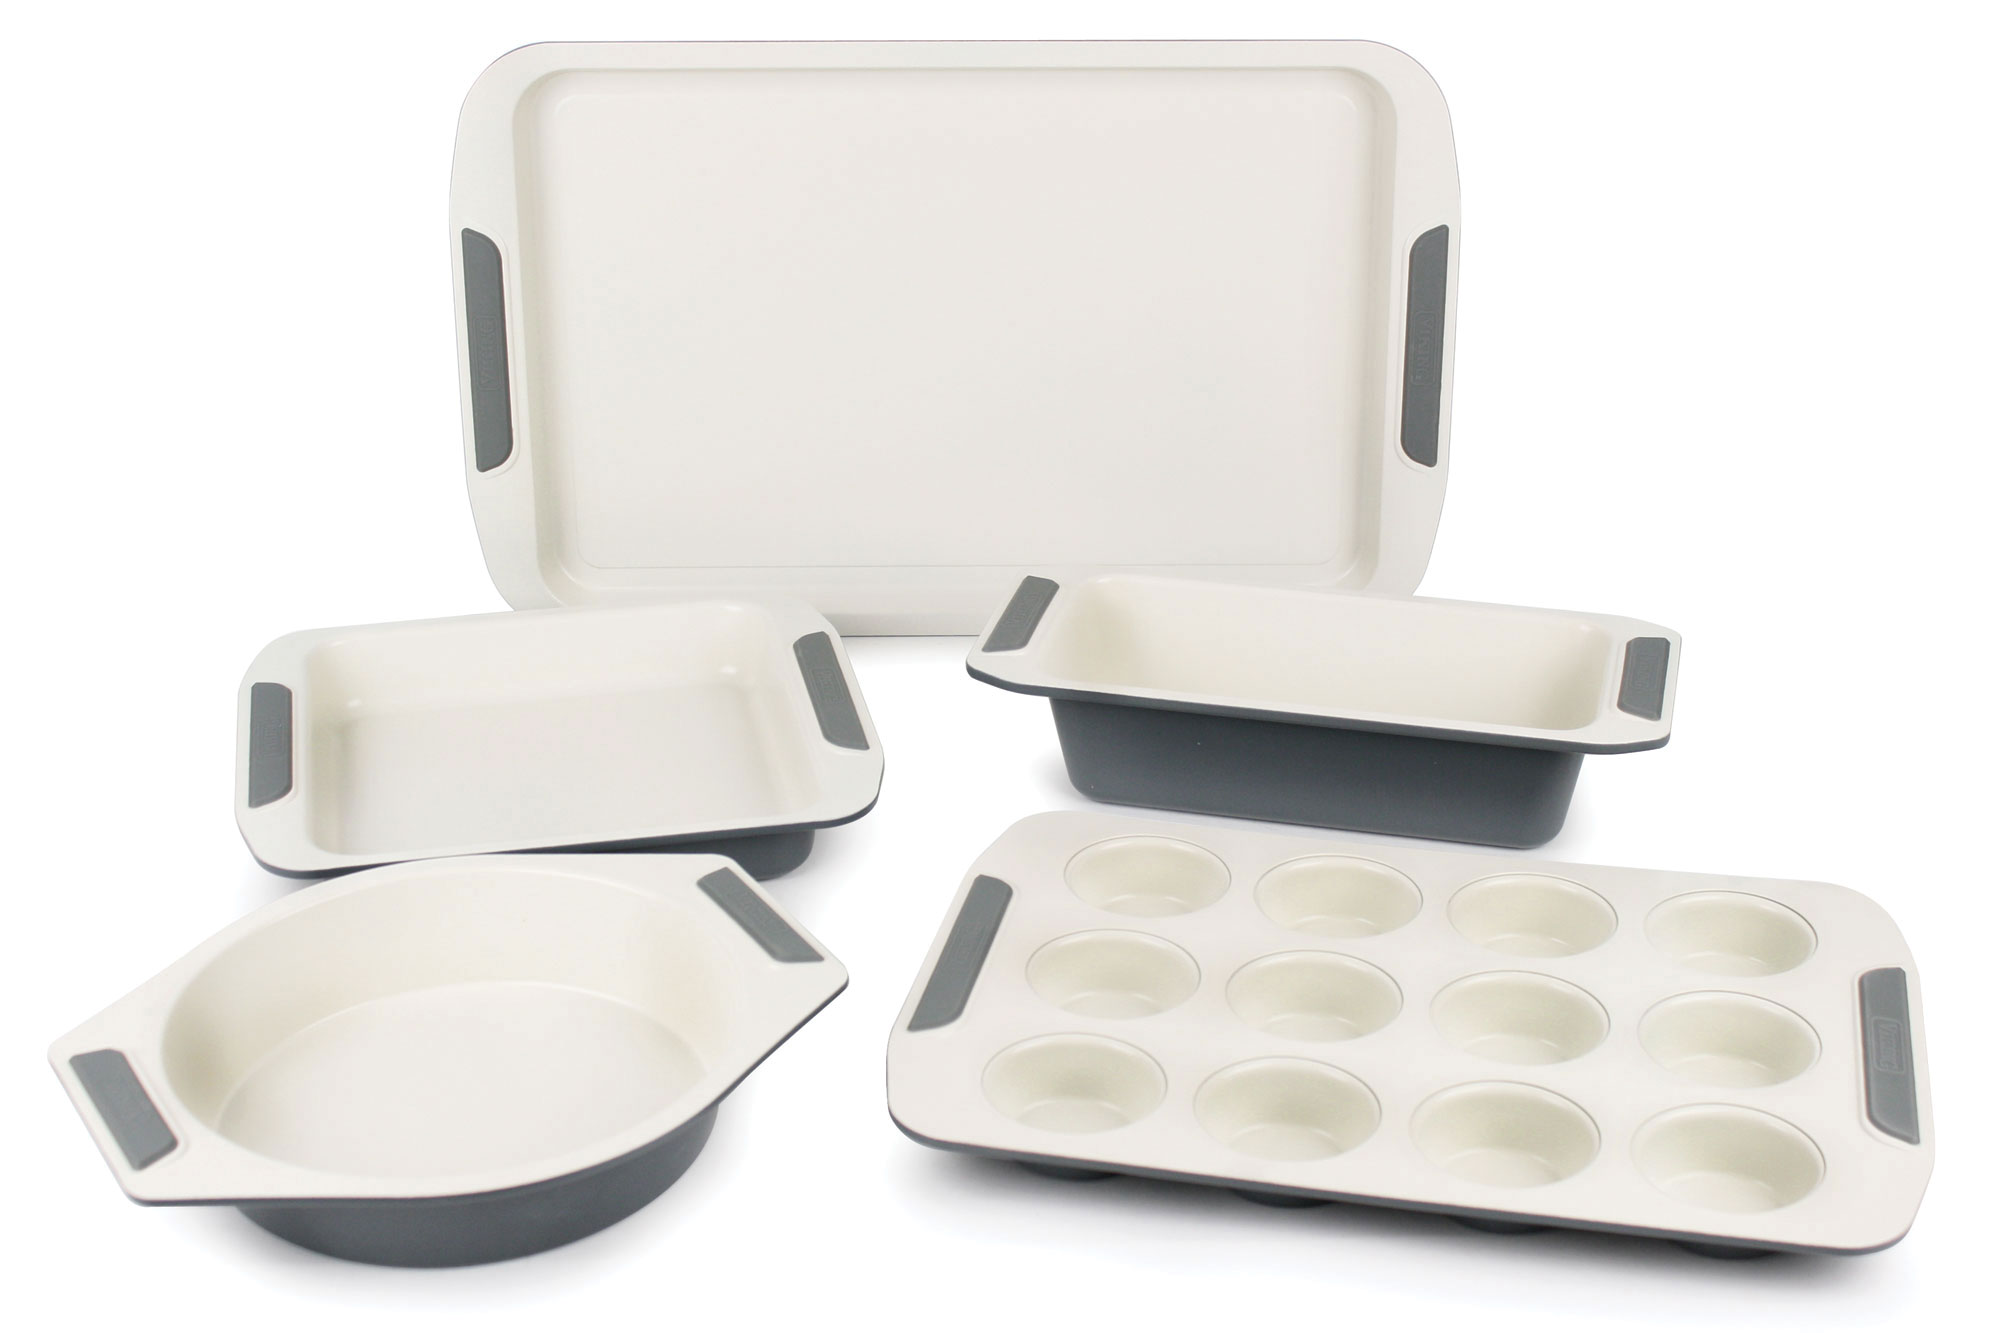 Viking Bakeware Set Ceramic Nonstick 5 Piece Baking Pans